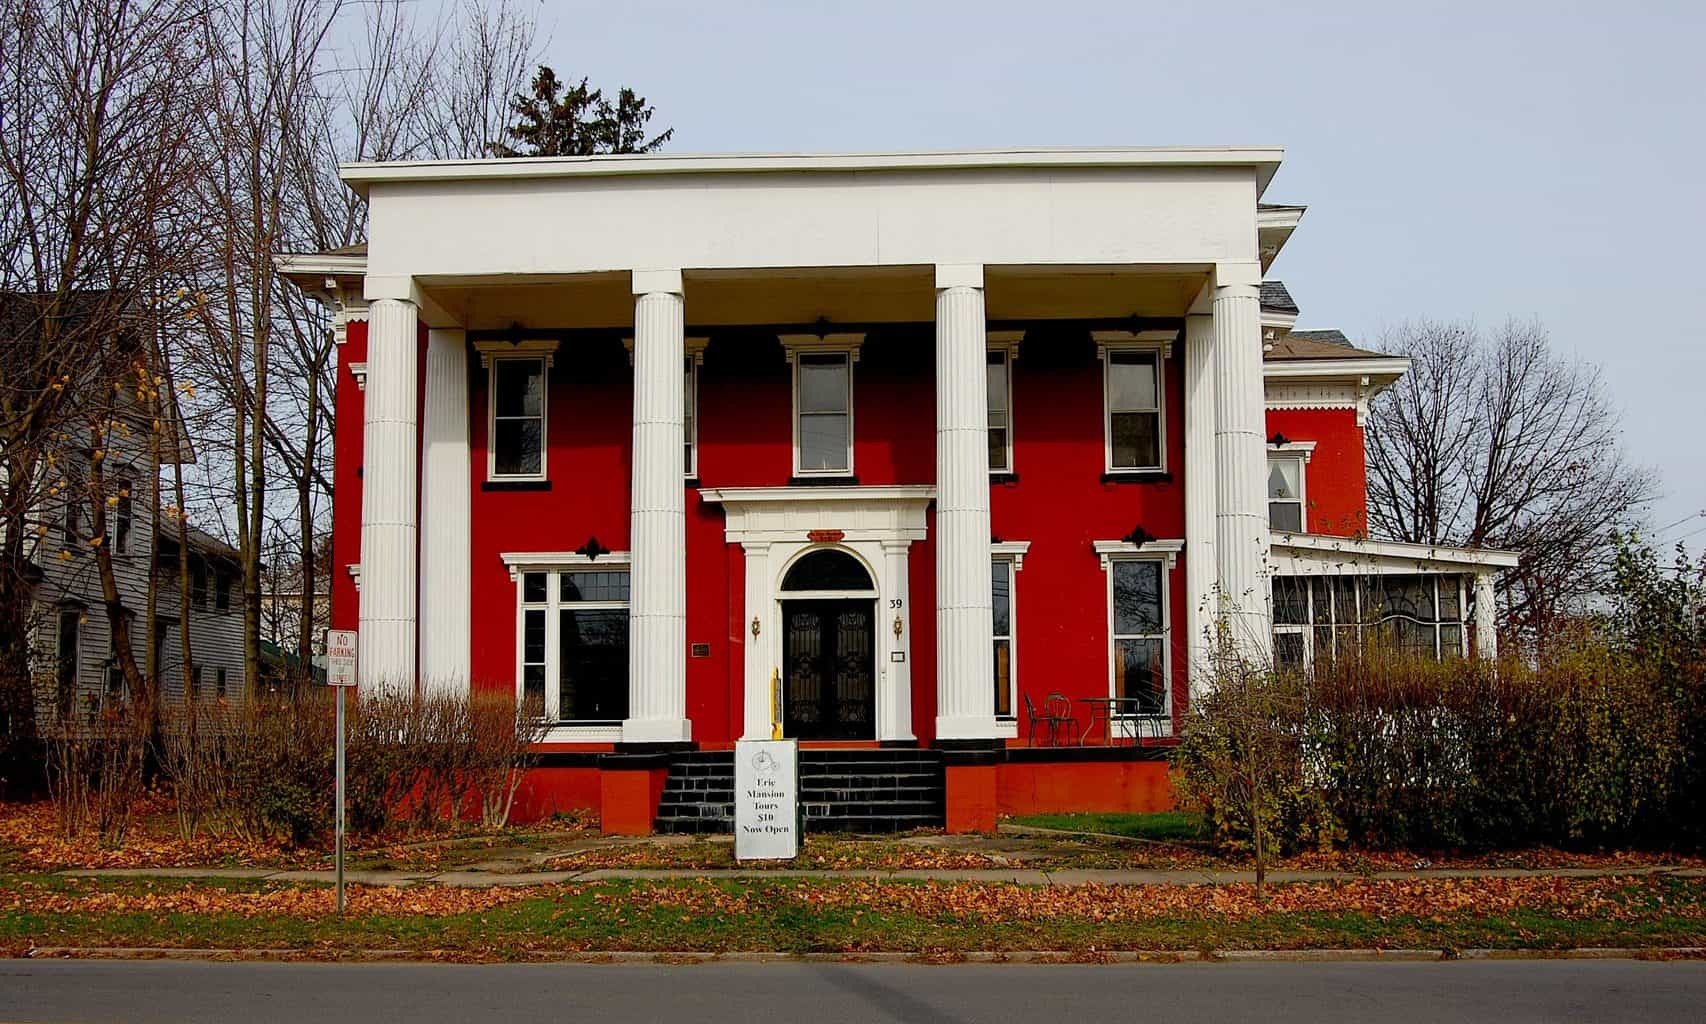 The beautiful, red exterior of the Erie Mansion Bed and Breakfast with giant white columns. One of the most haunted hotels in New York.